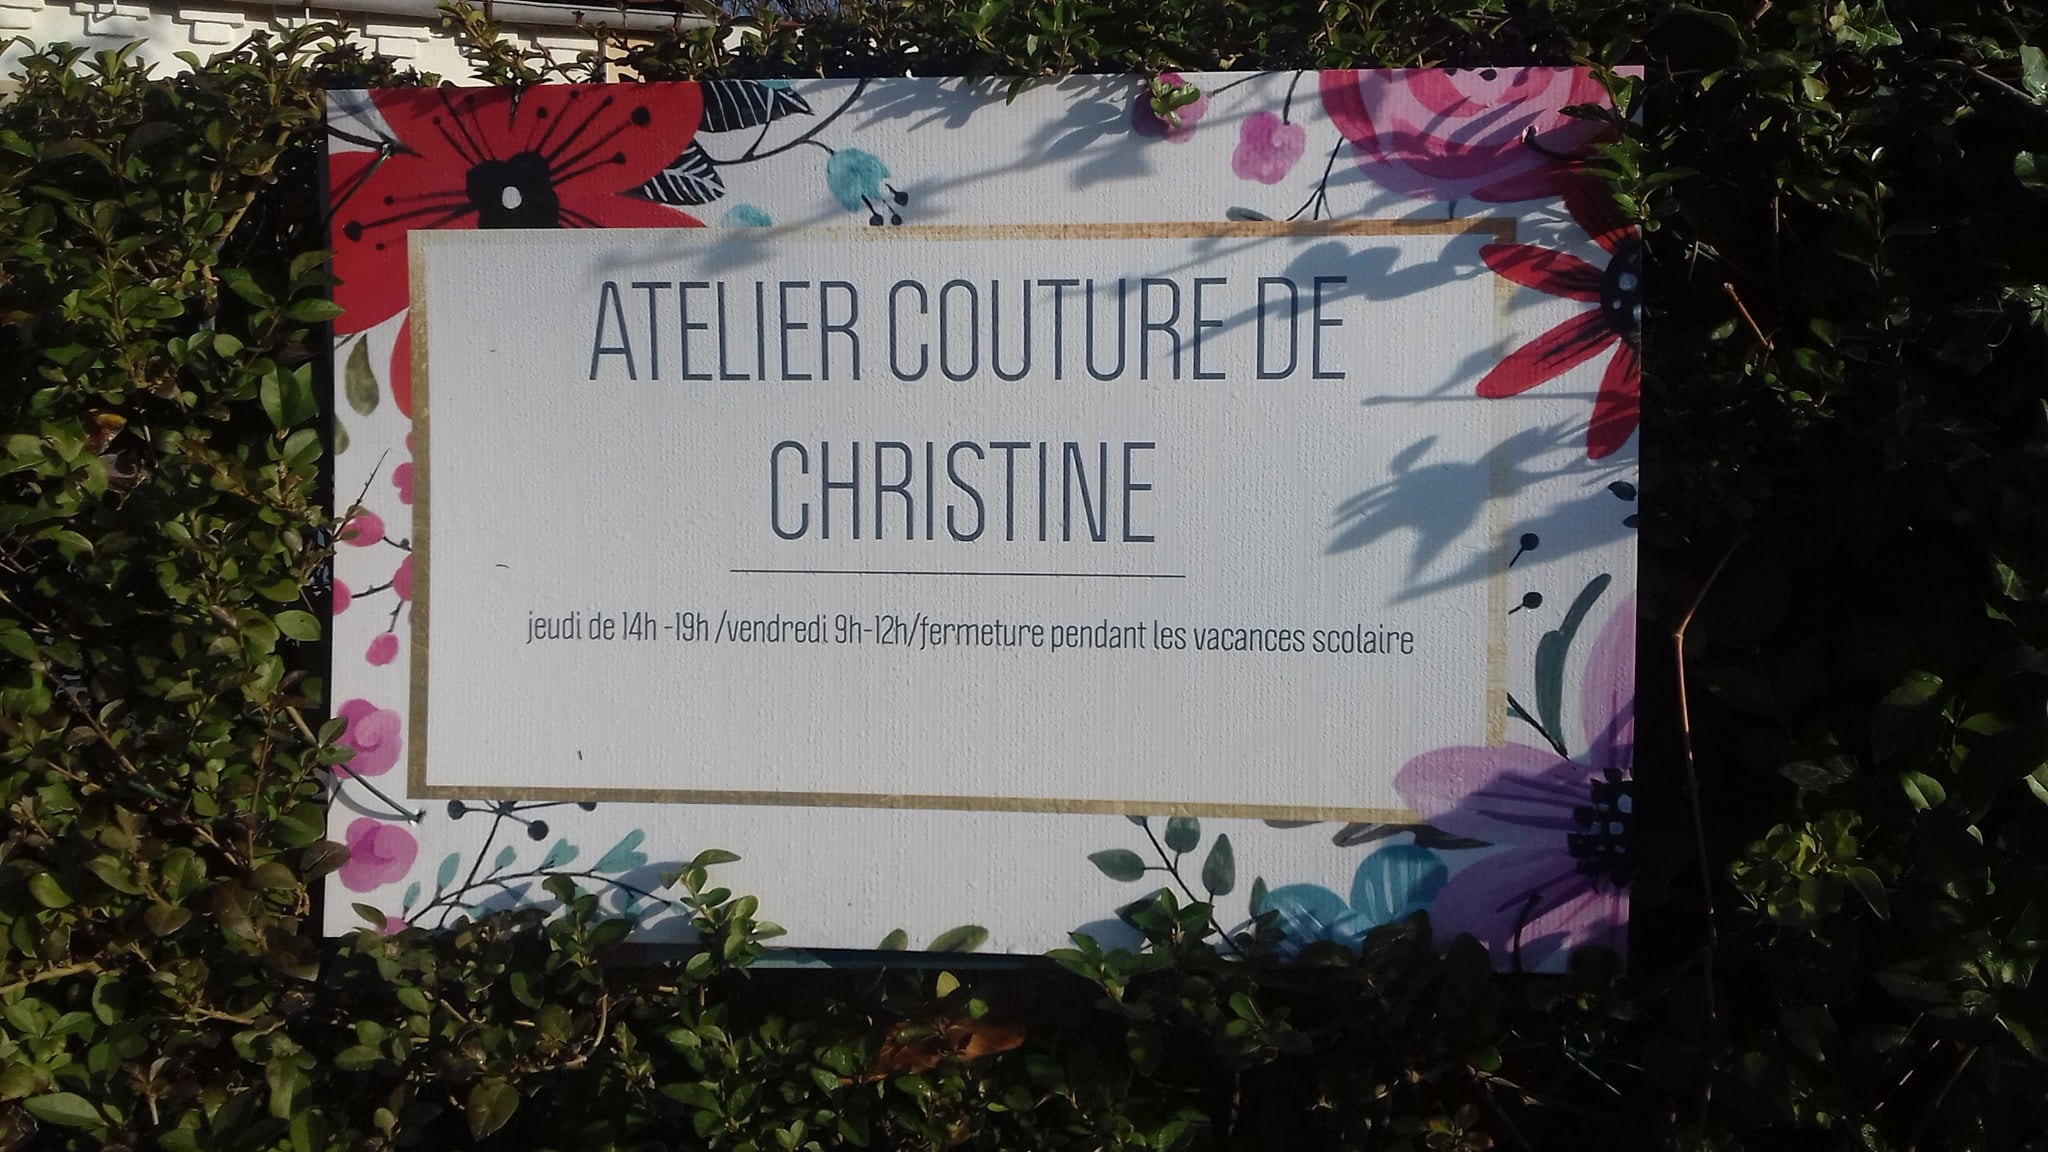 Christine couture